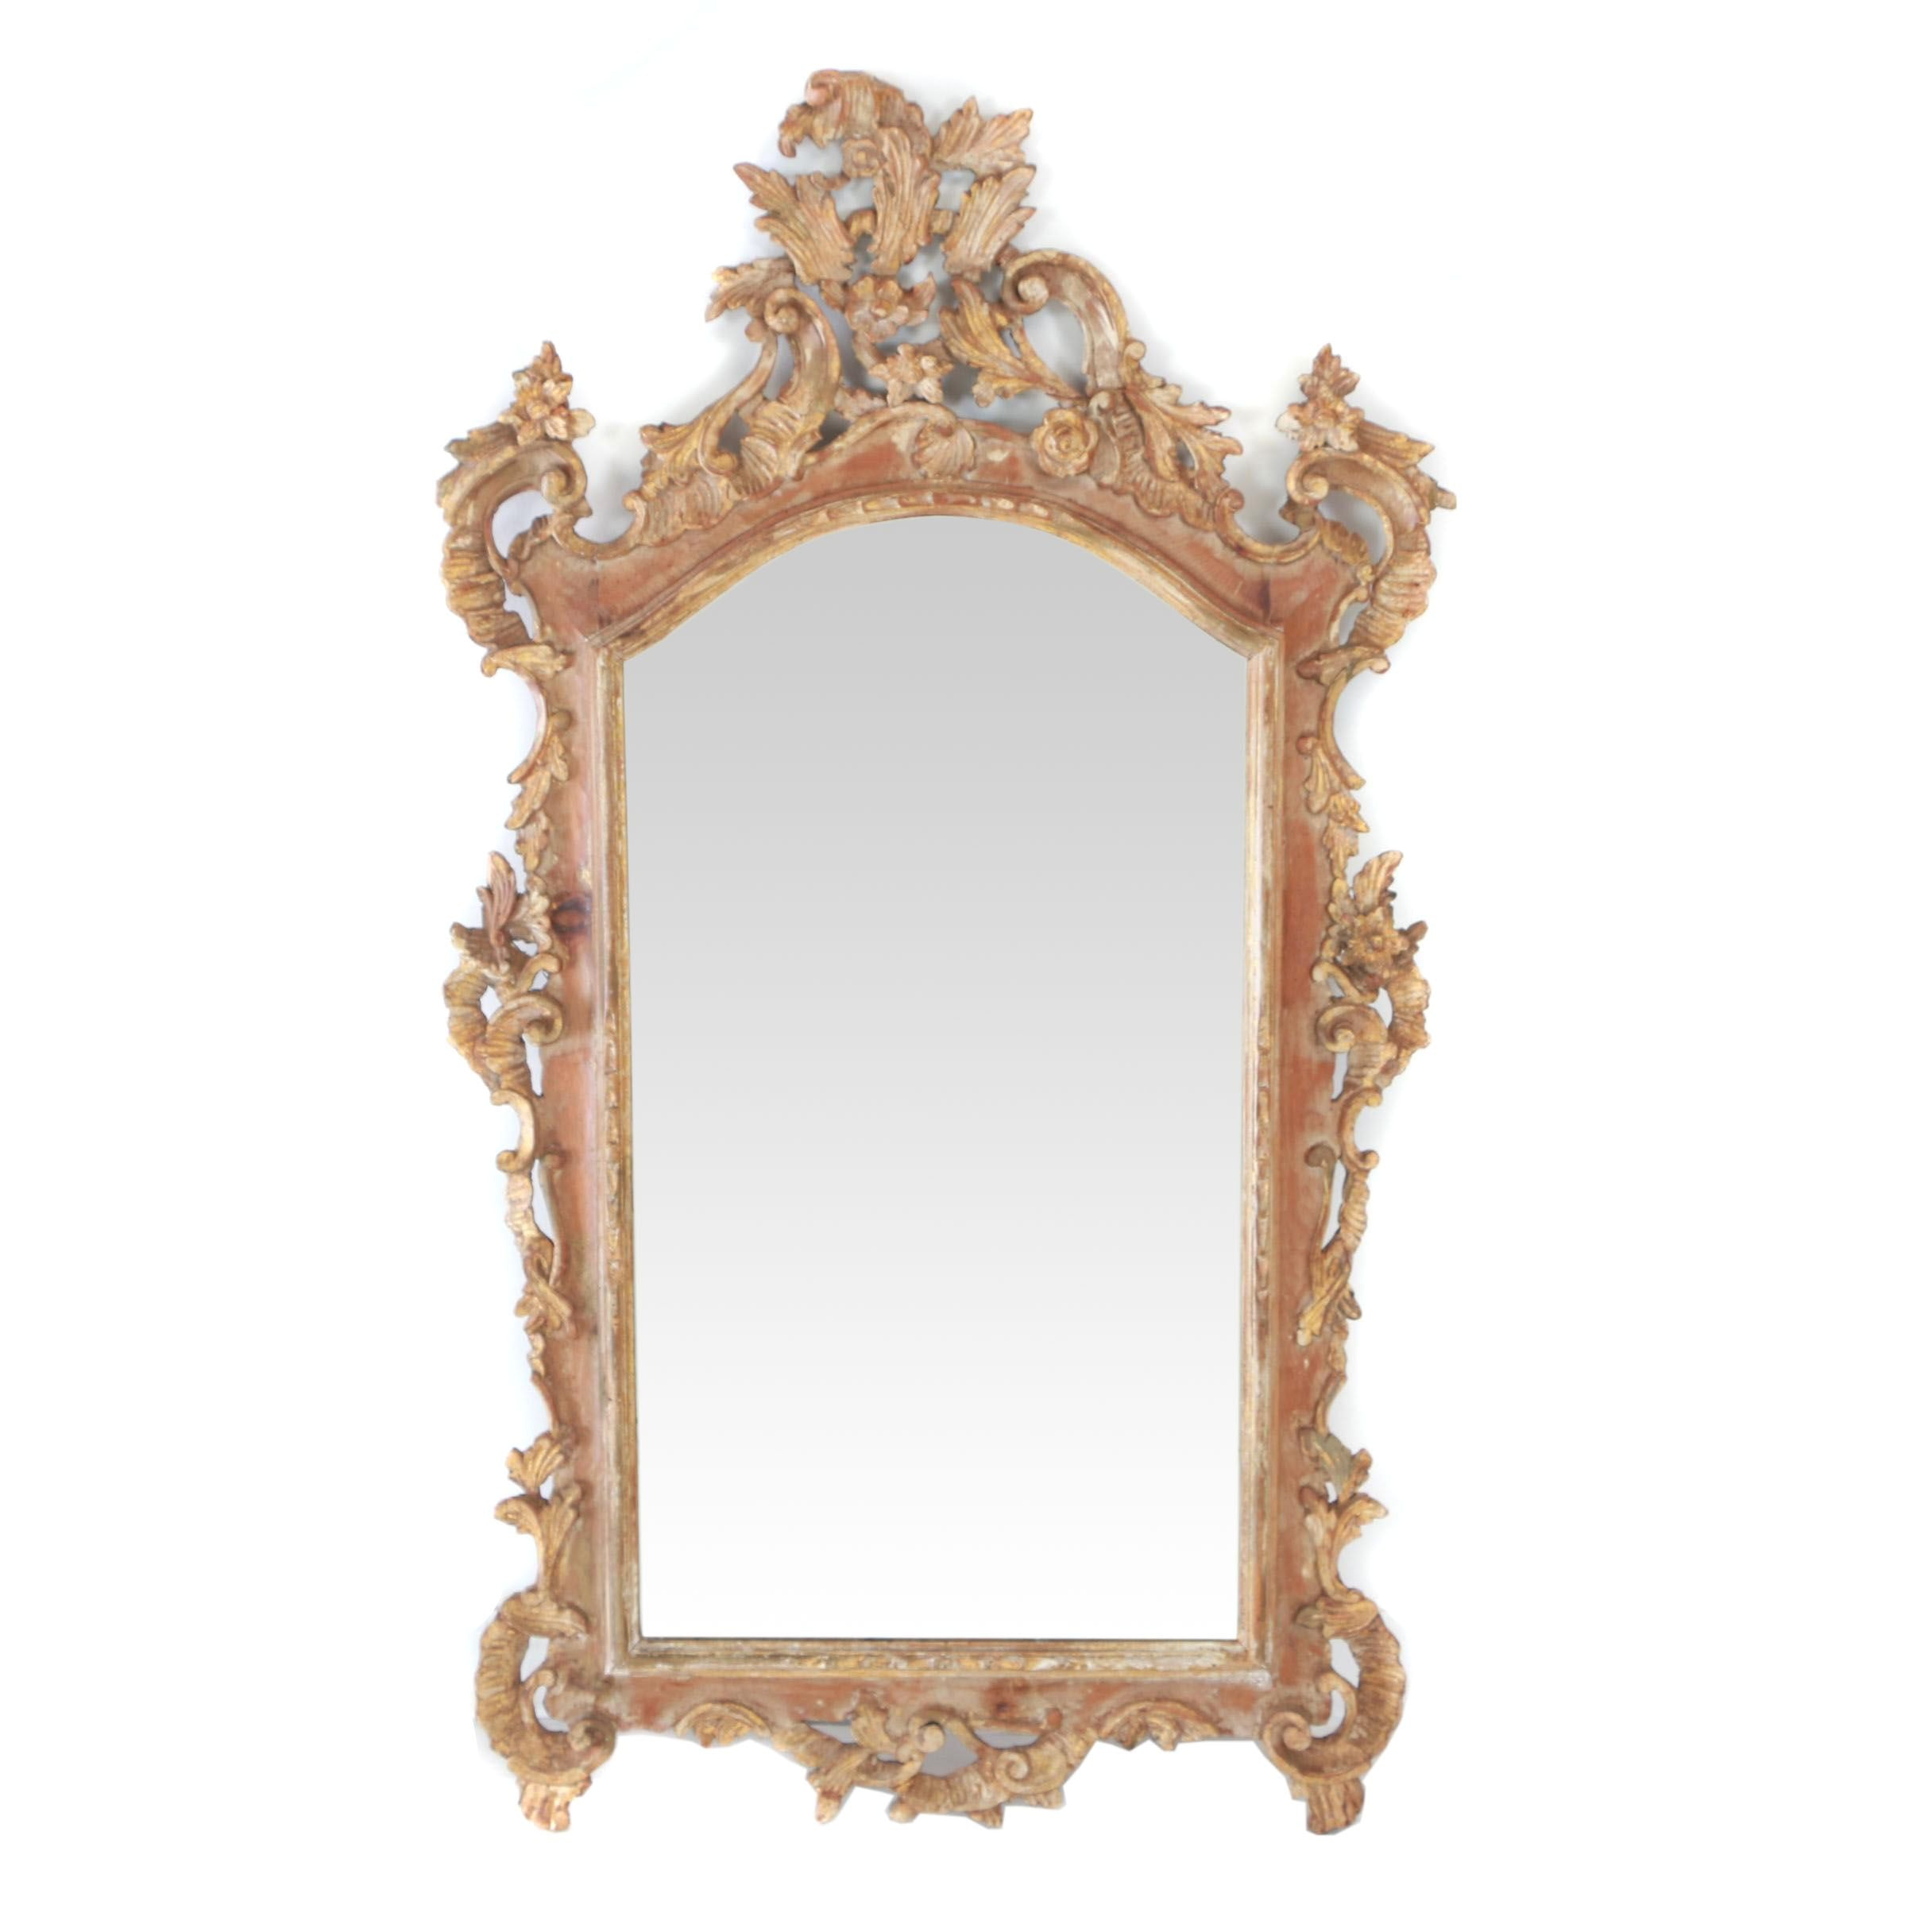 Rococo Style Giltwood Mirror, Probably Italian, 20th Century